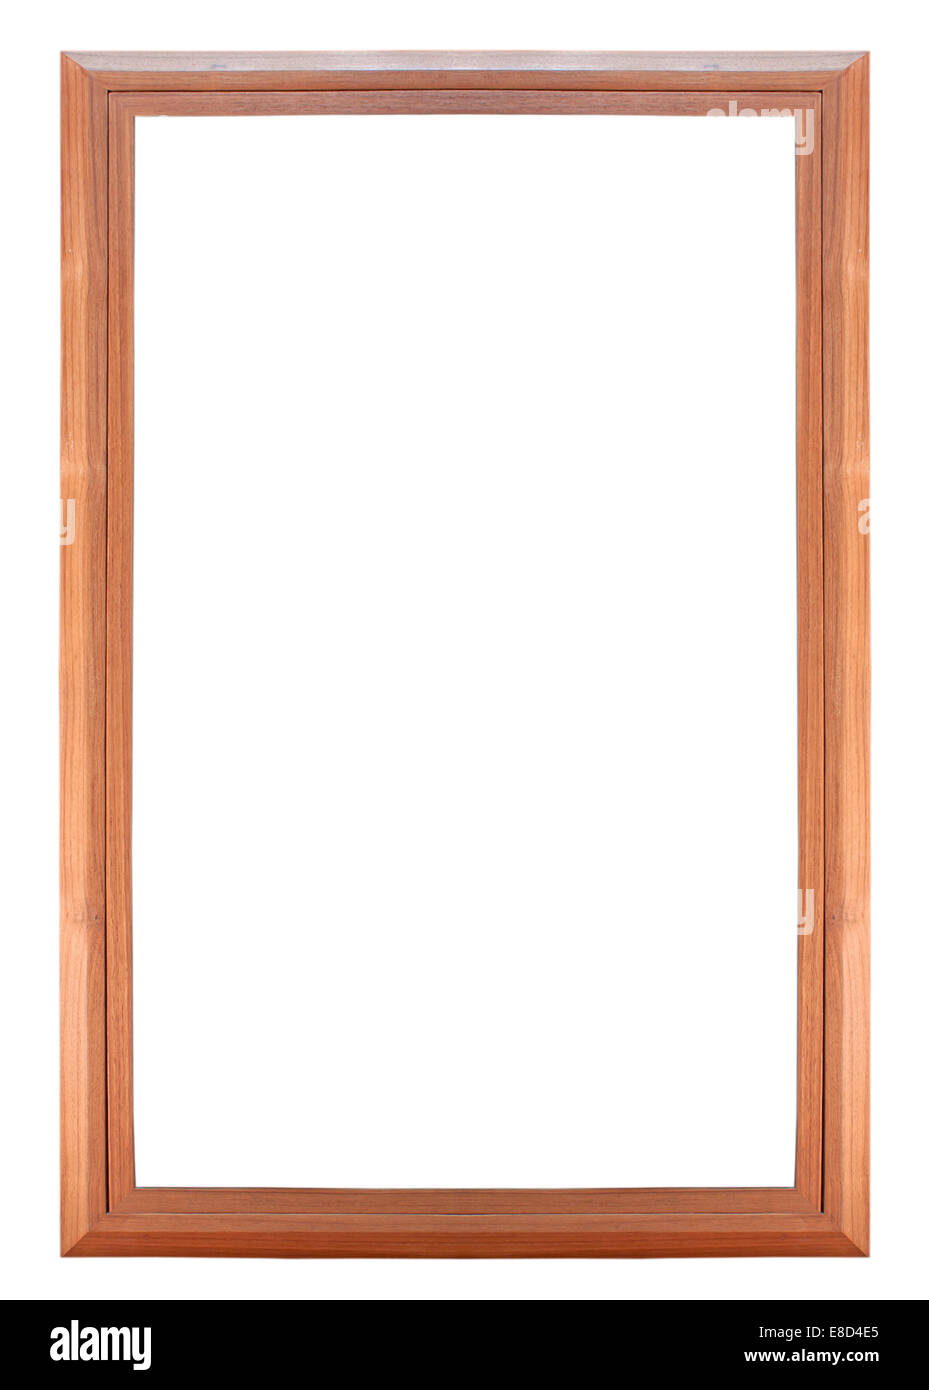 TEAK//GOLD WOODEN PICTURE PHOTO FRAME WITH GLASS